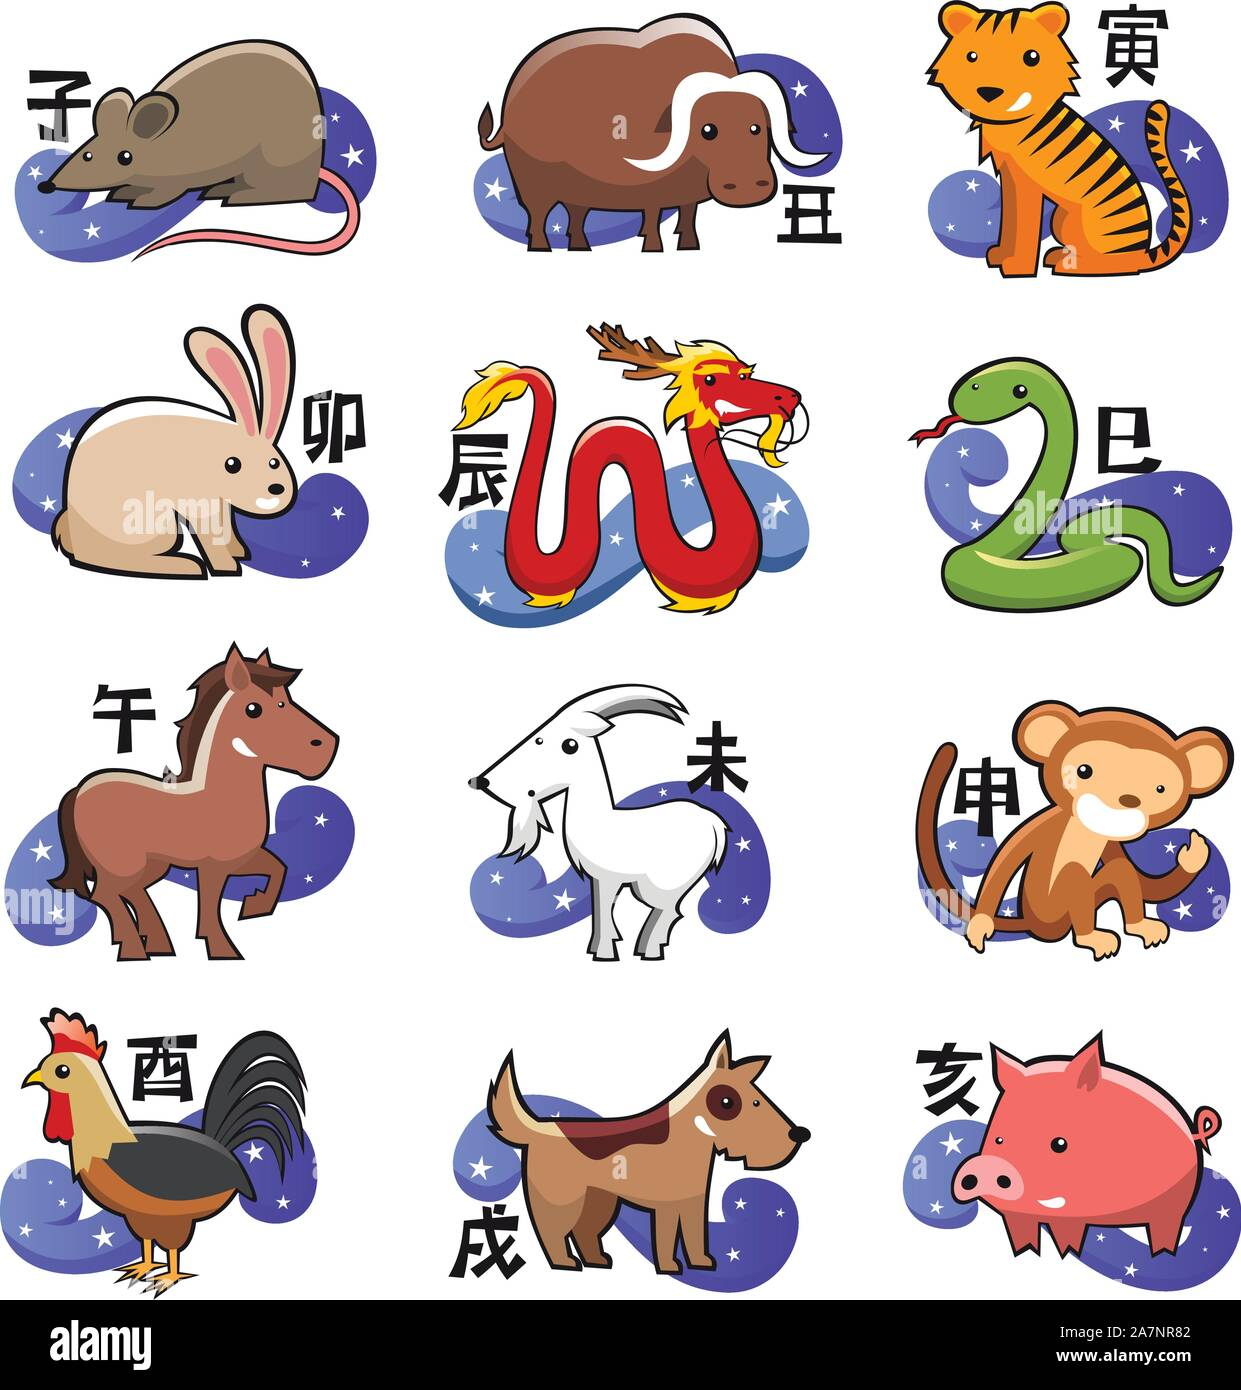 Chinese Zodiac Sign Icon Symbols Stock Vector Art